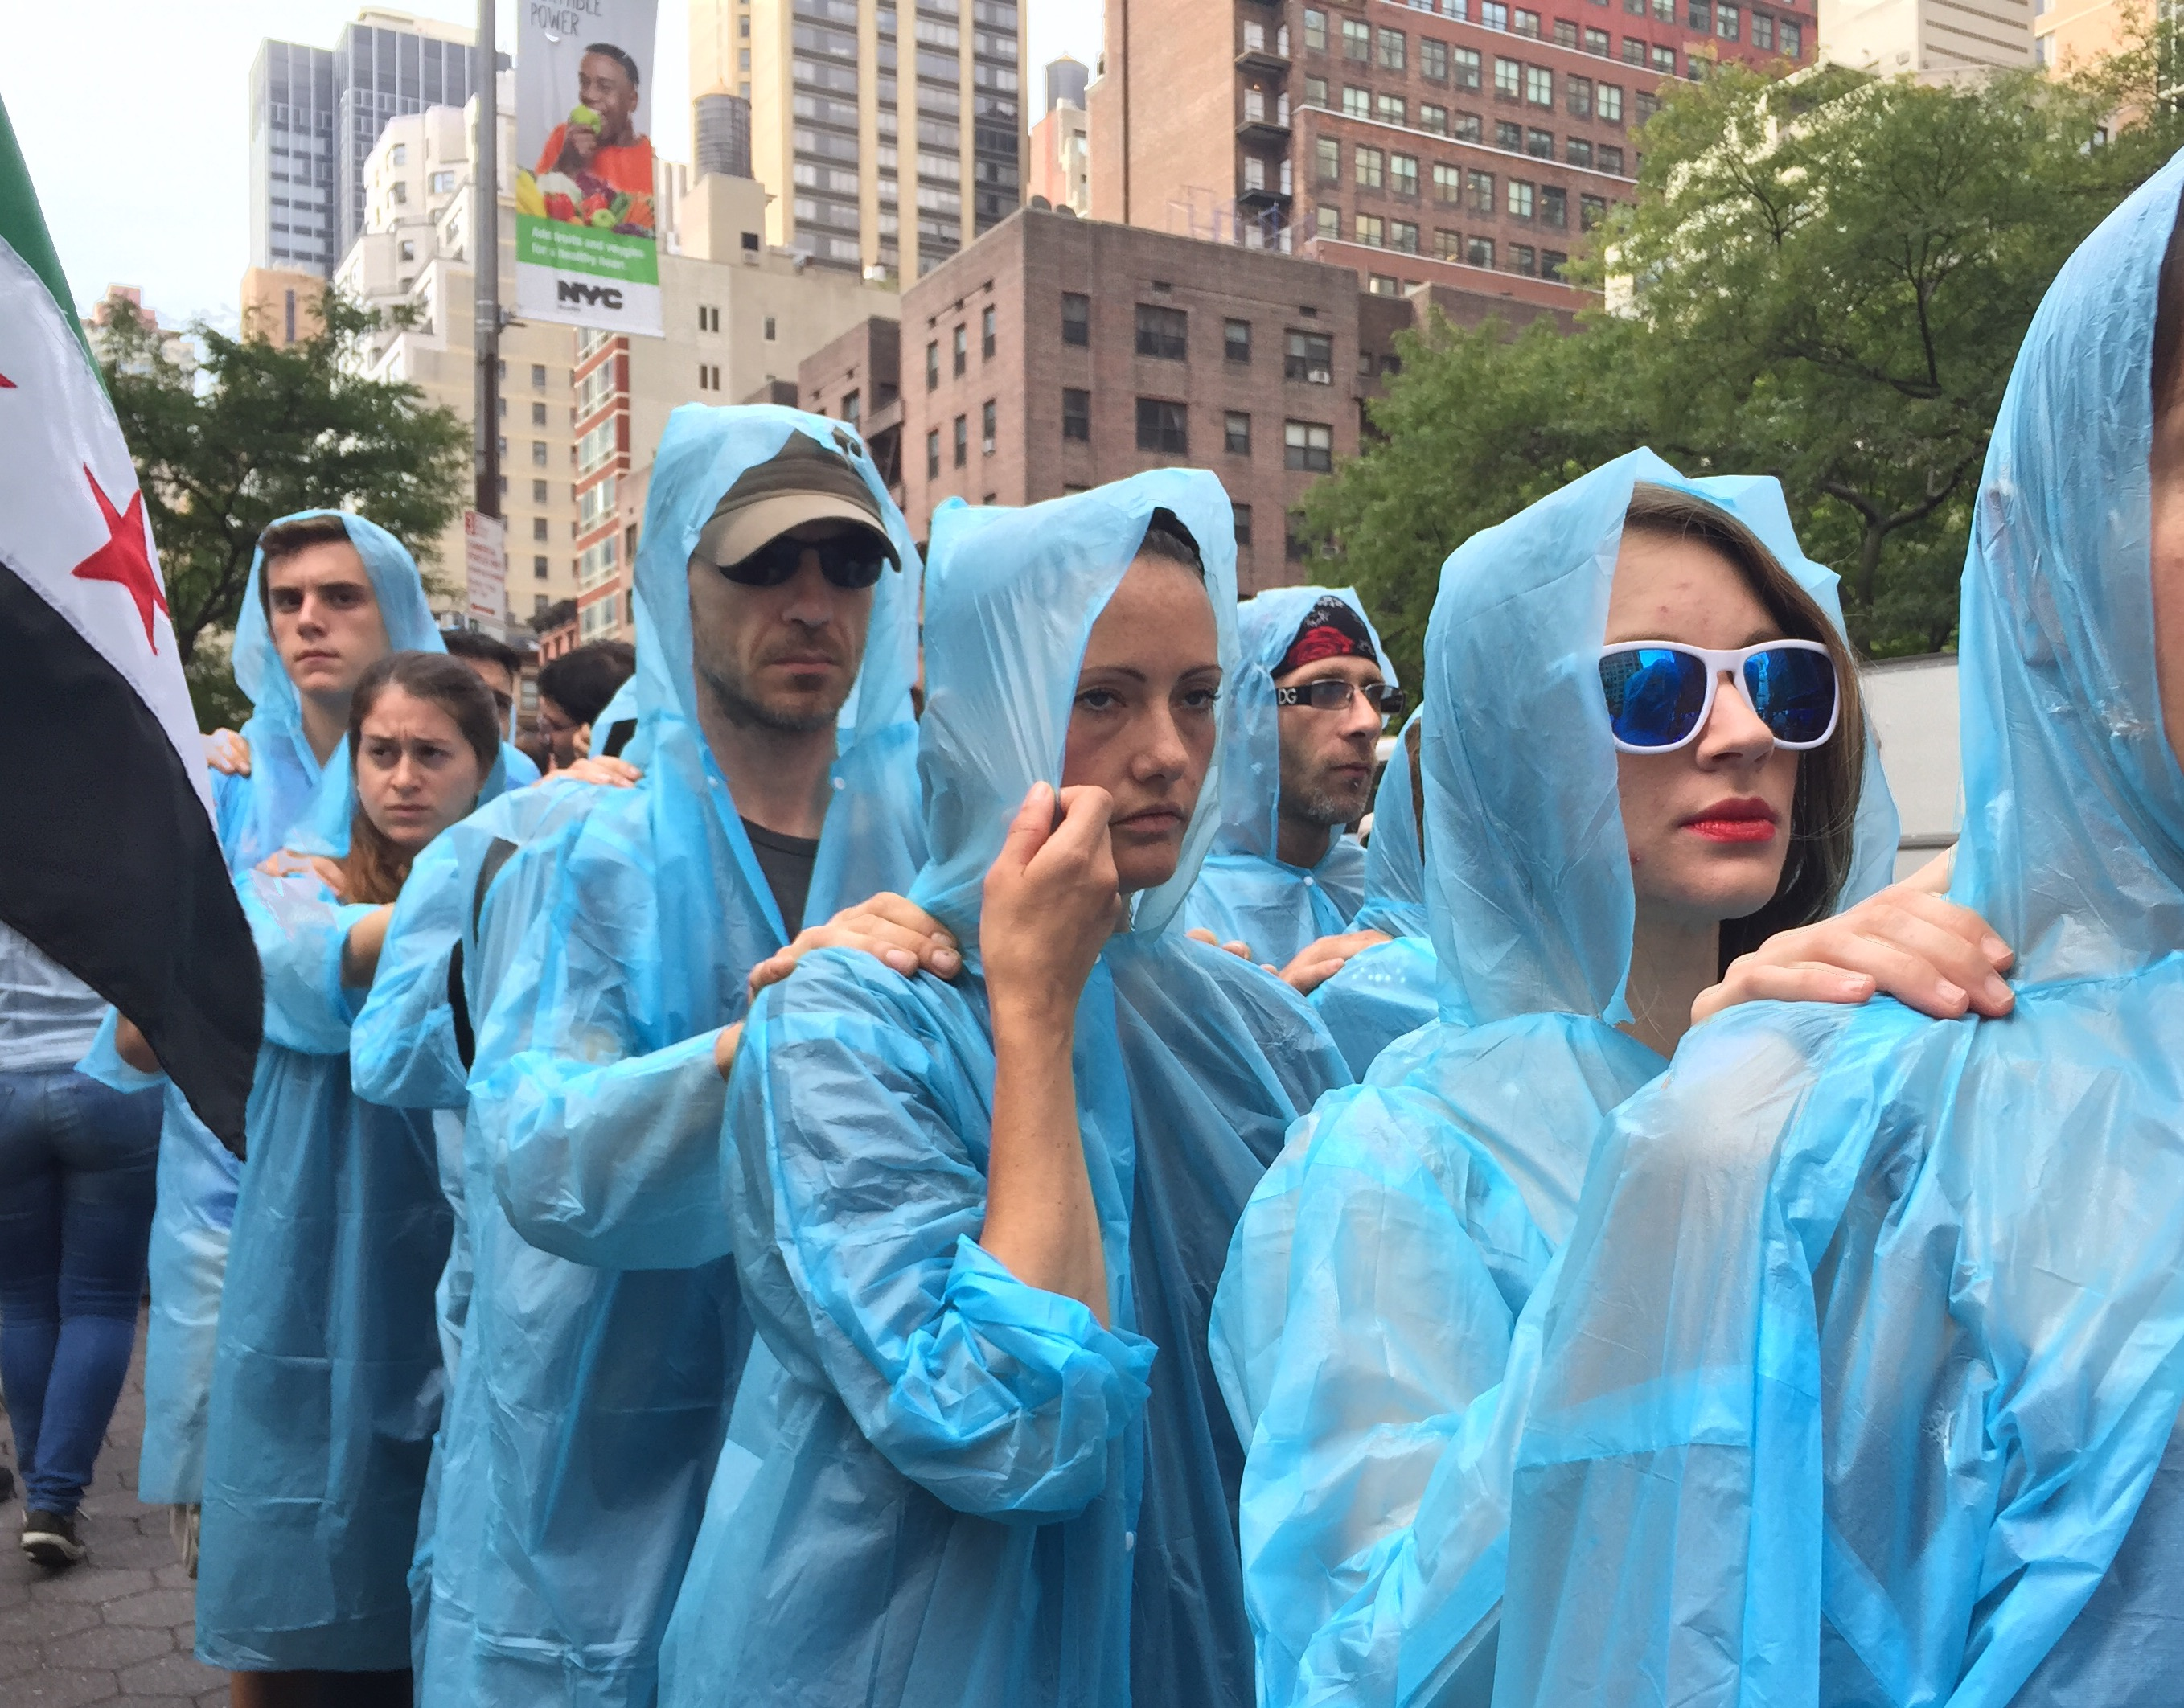 """An artistic protest performance called """"Backward march:  The World Backs Down to Iranian Terror.""""  These protesters marched 3 kilometers backwards to the United Nations as Iranian President Hassan Rouhani was speaking to the UN General Assembly.  The..."""